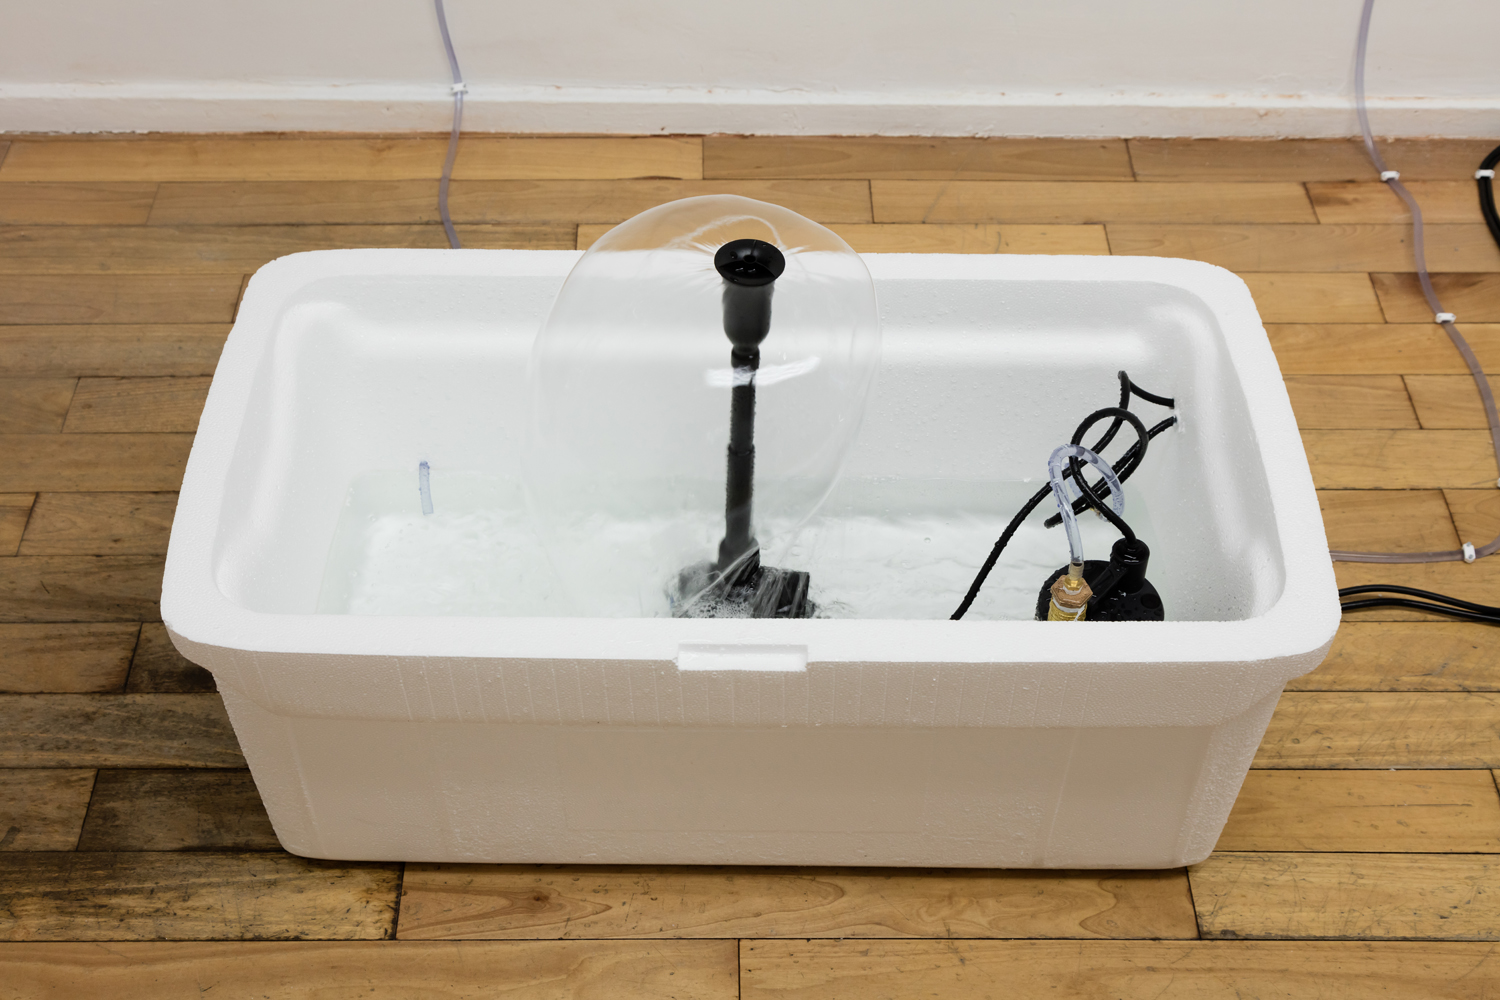 Phoebe Berglund in collaboration with Arkadiy Ryabin,  Huskee Fountain,  2019. Styrofoam, plastic fountain, vinyl tubing. 23.5 x 36 x 19 inches.